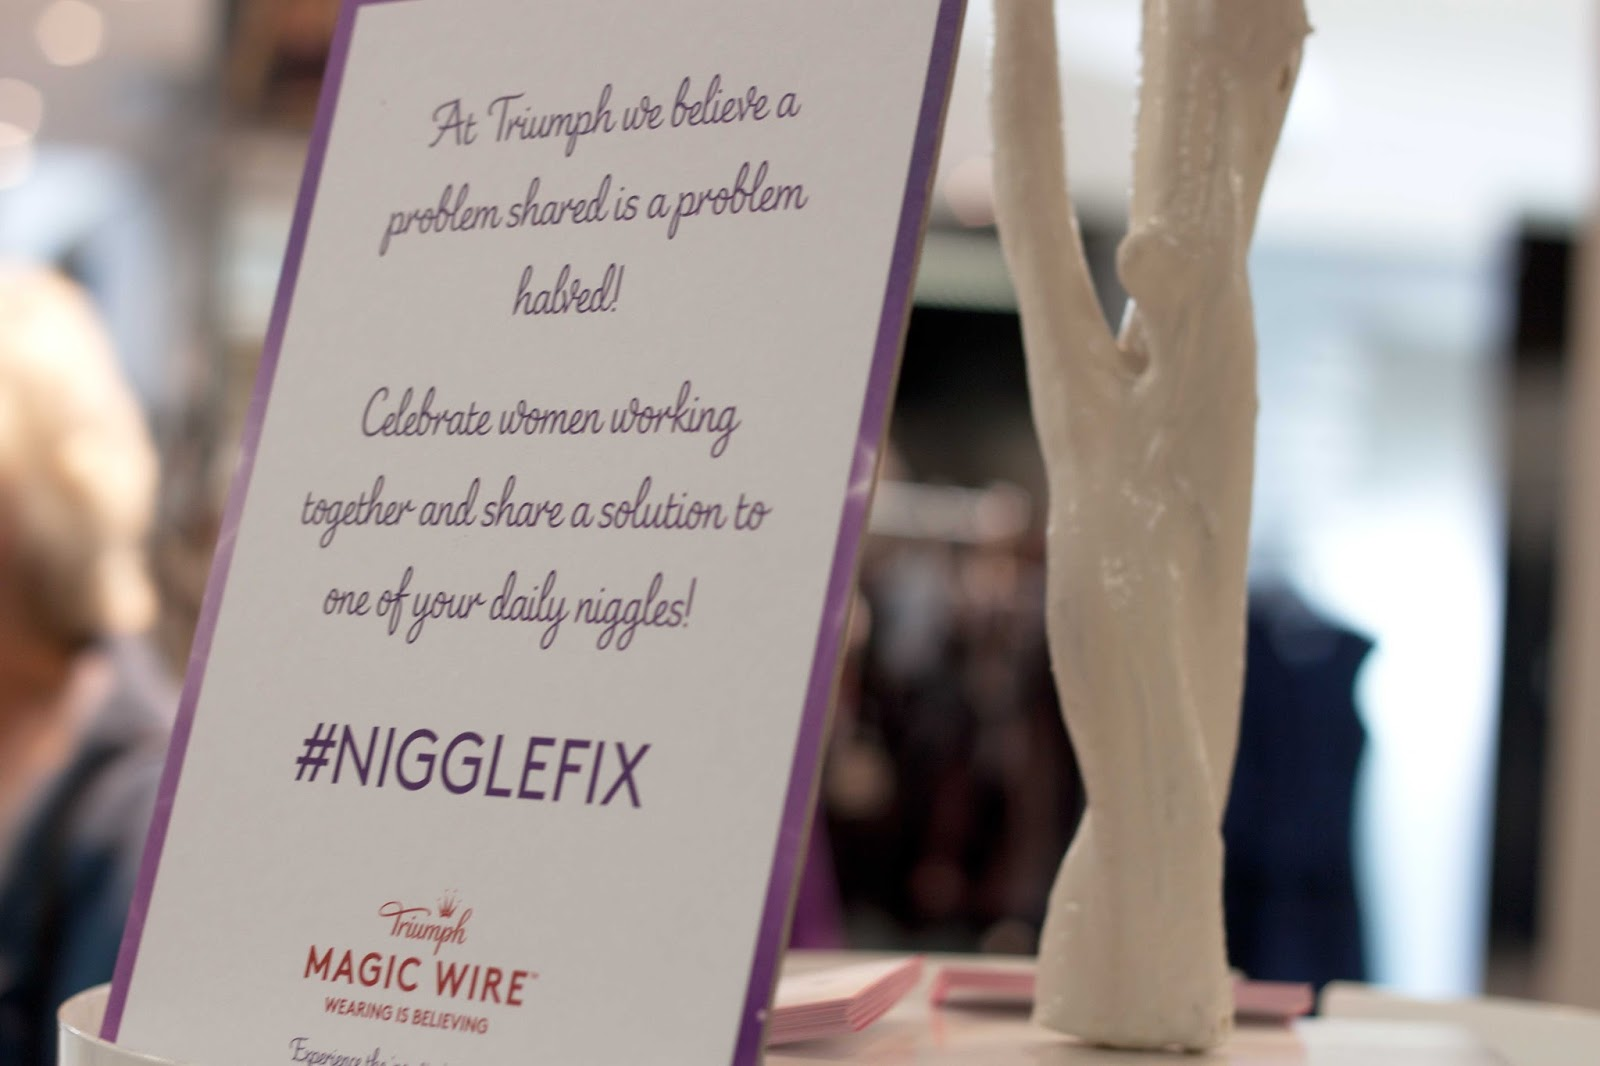 THE TRIUMPH MAGIC WIRE BRA NIGGLE FIX EVENT